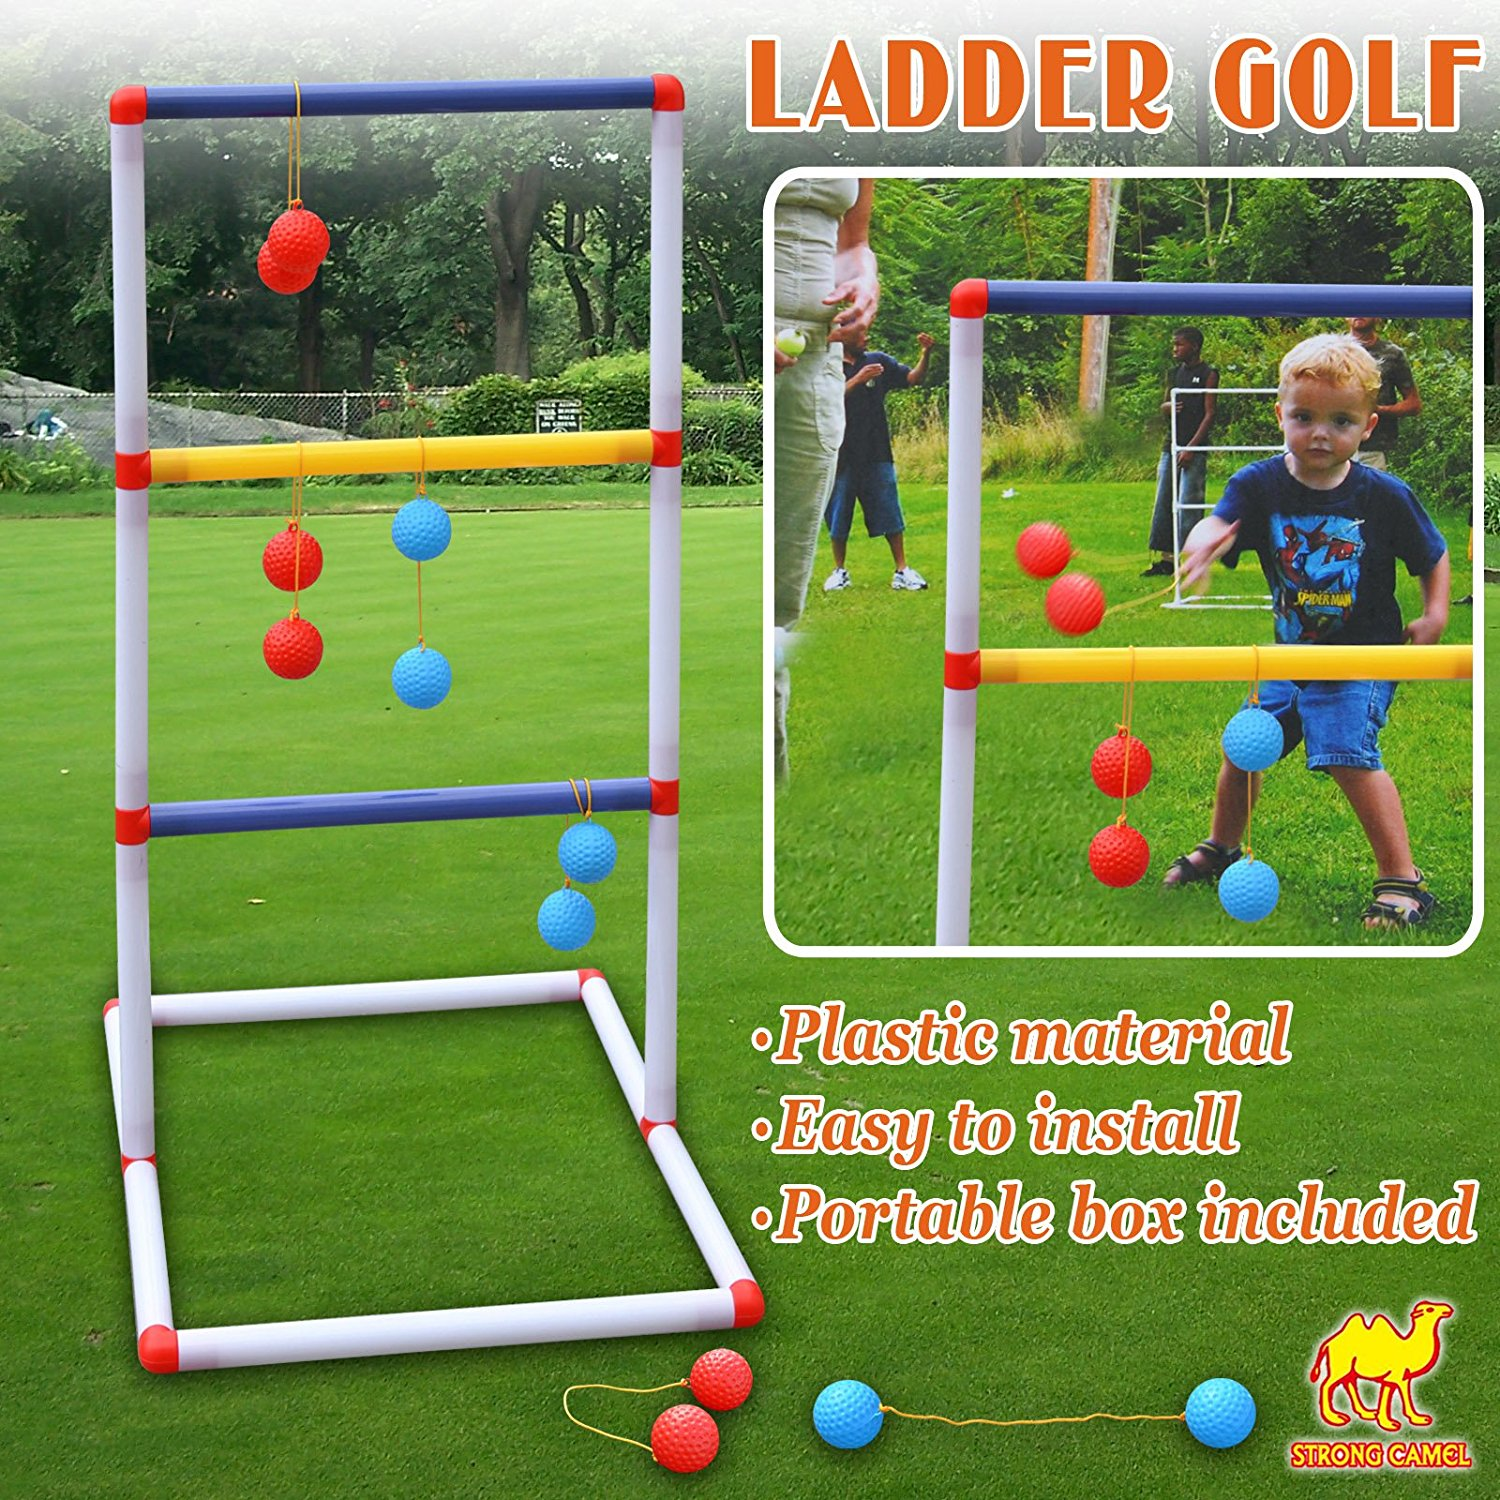 Strong Camel Ladder Toss Game Set Golf Backyard Family Games With 6 Bolos  Kids Child Sports